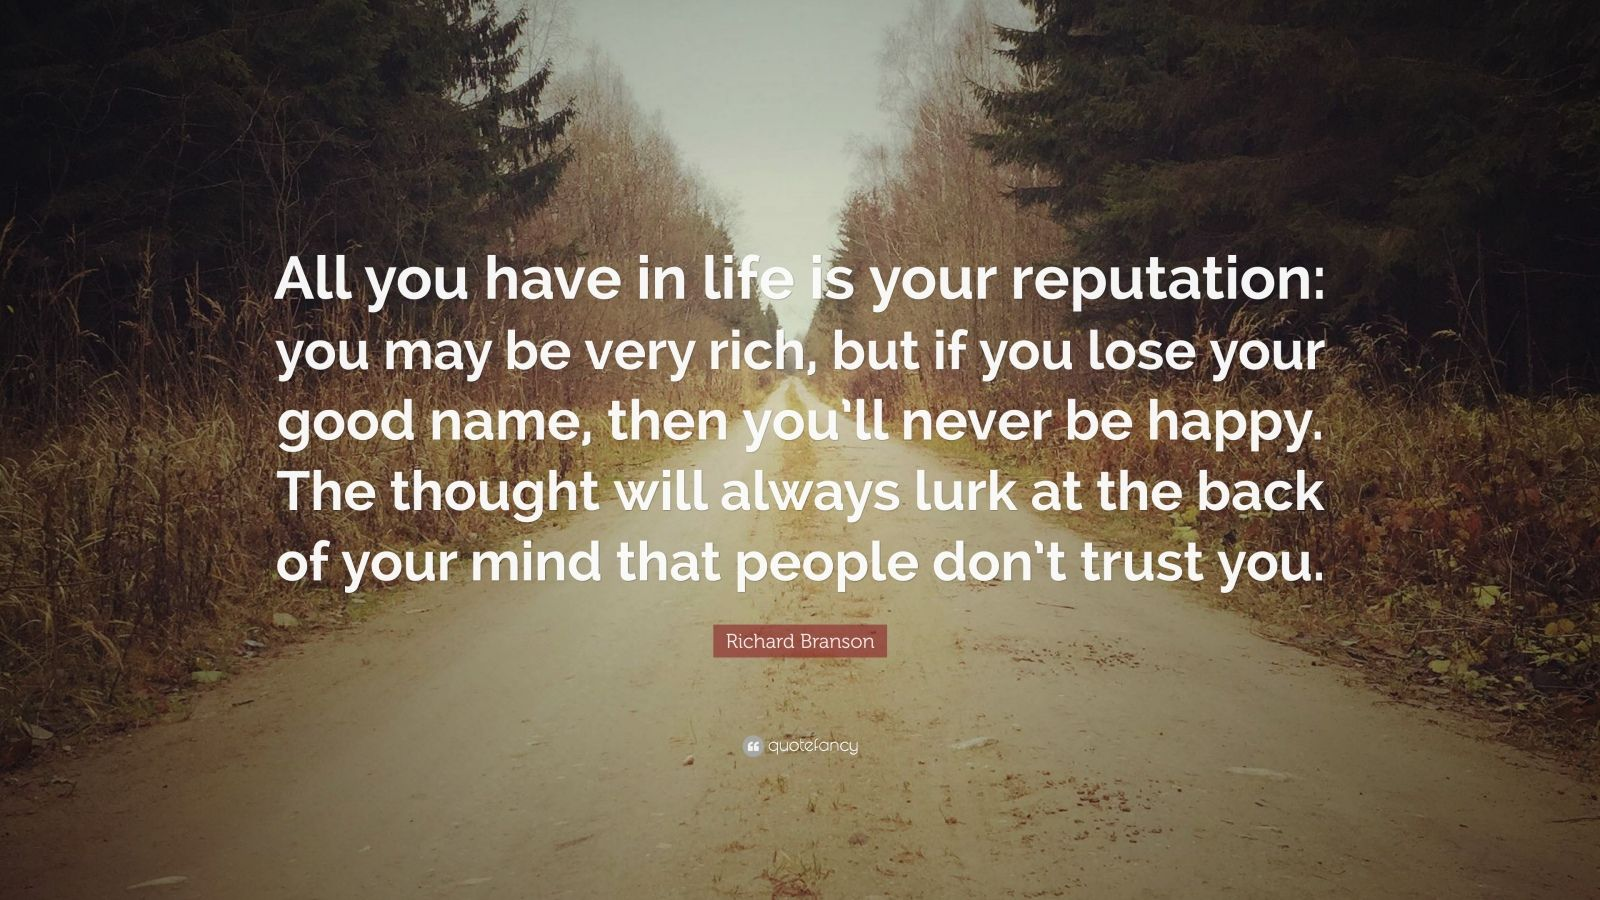 """Richard Branson Quote: """"All you have in life is your reputation: you may be very rich, but if you lose your good name, then you'll never be happy. The thought will always lurk at the back of your mind that people don't trust you."""""""